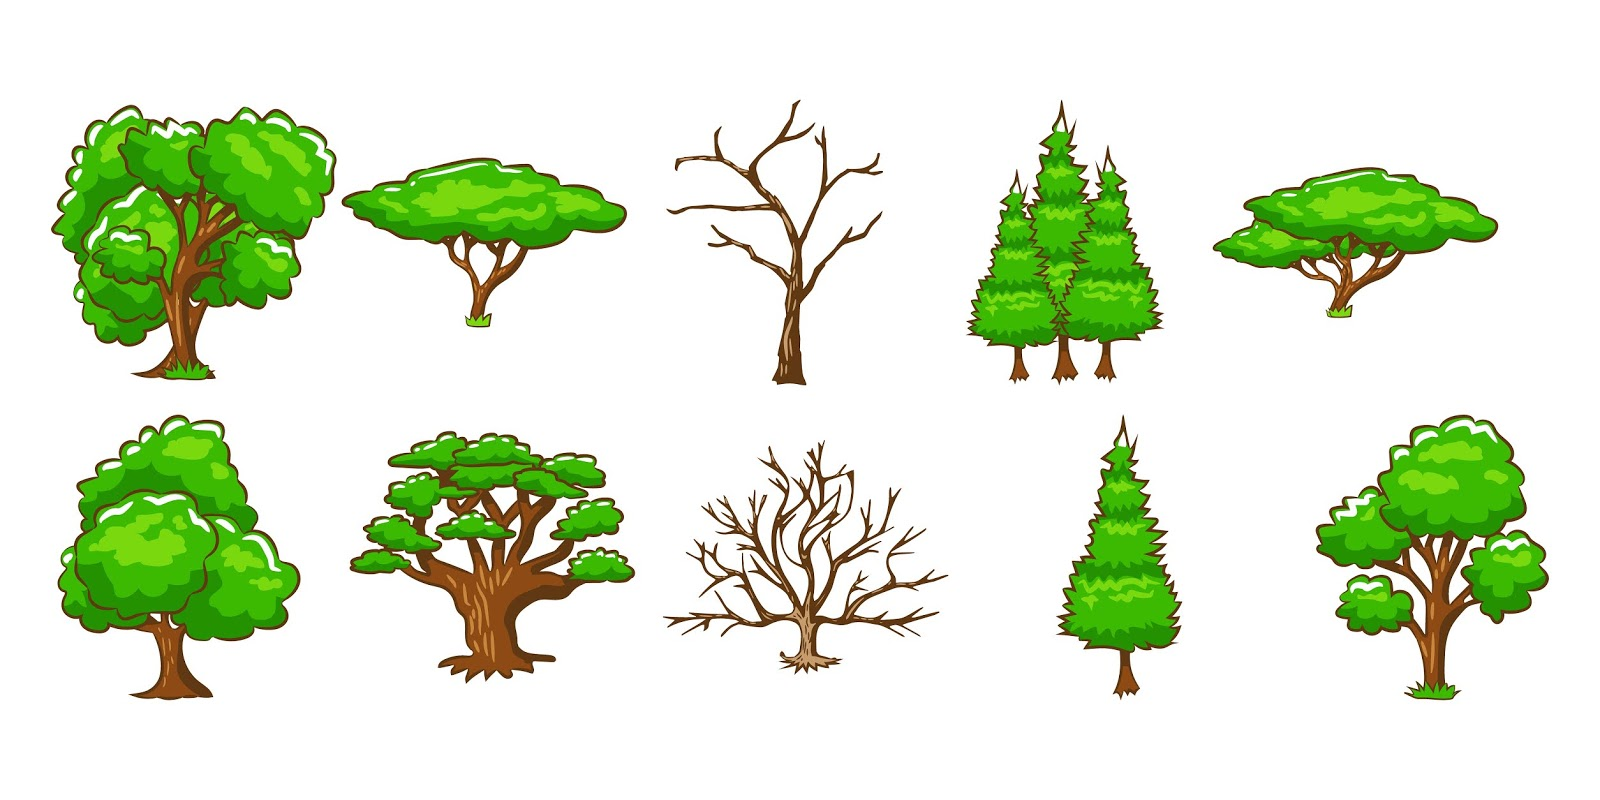 Tree Vector Set Clipart Design Free Download Vector CDR, AI, EPS and PNG Formats